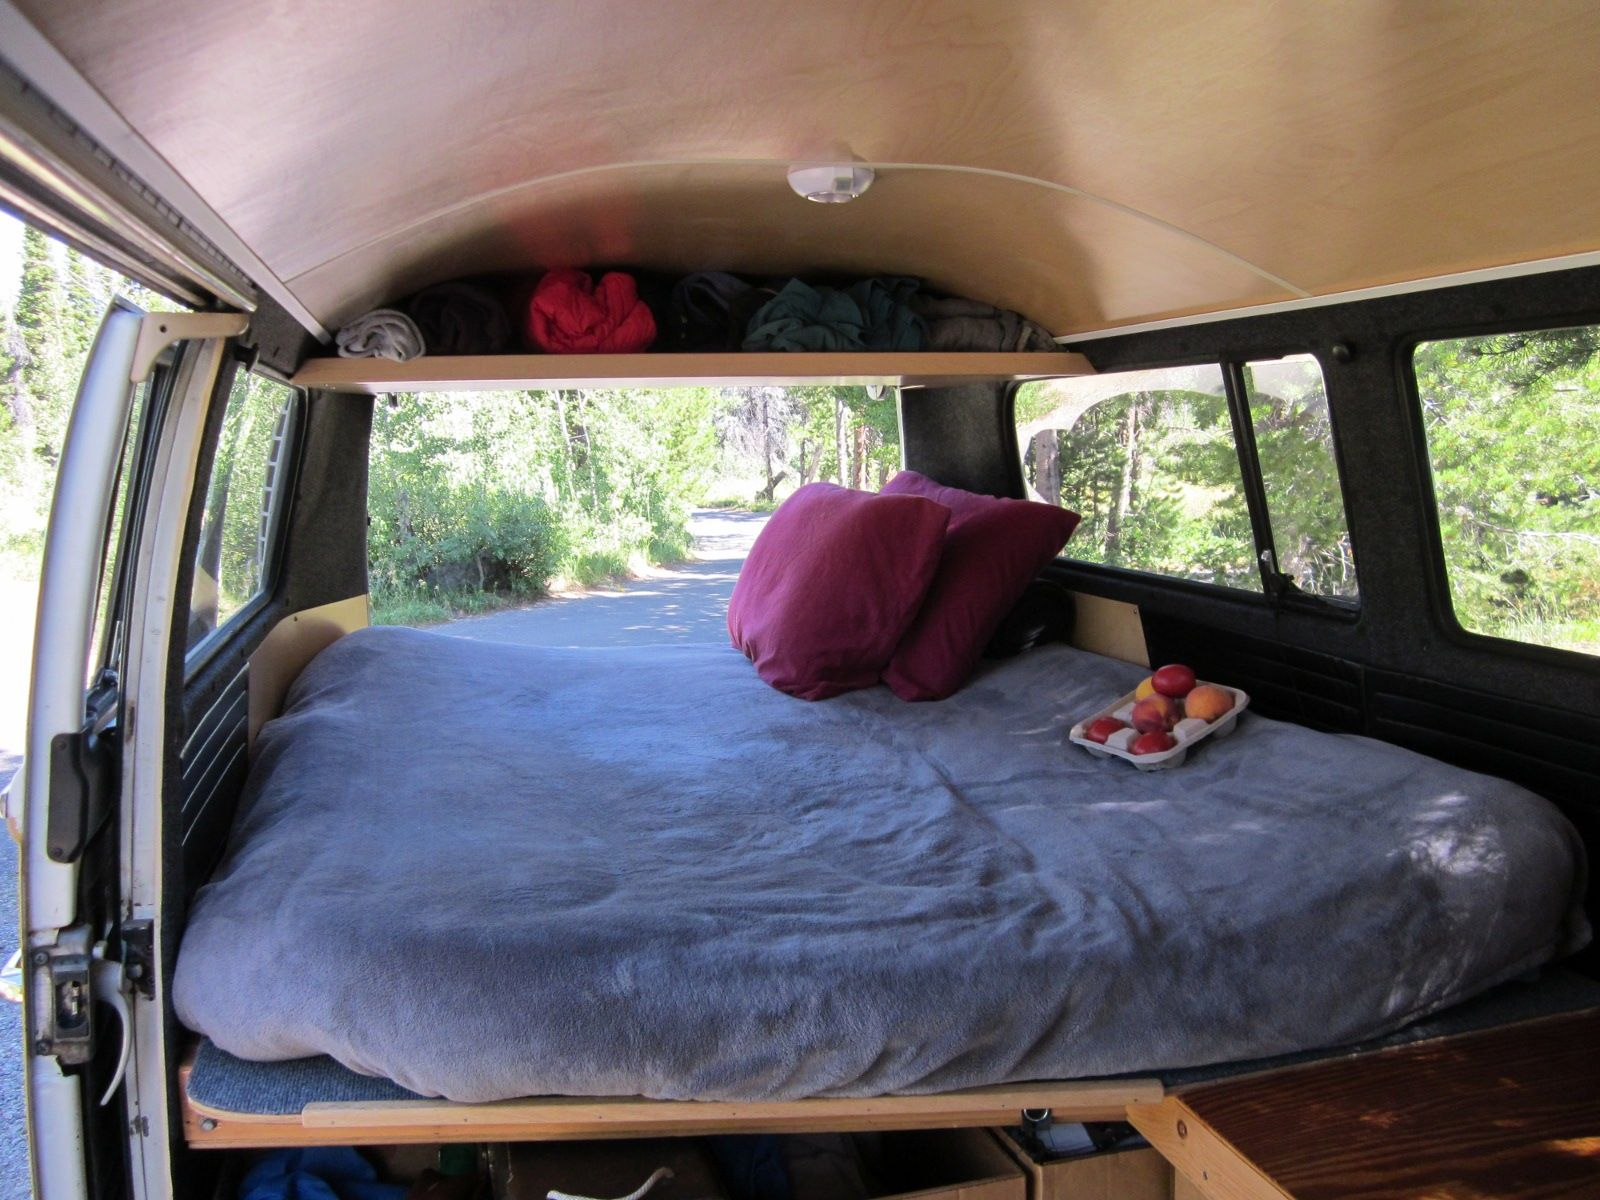 The Roof Wood Paneling Put A Board Across For Storage Also Is That A Light Vw Bus Interior Vw Bus Bus Interior